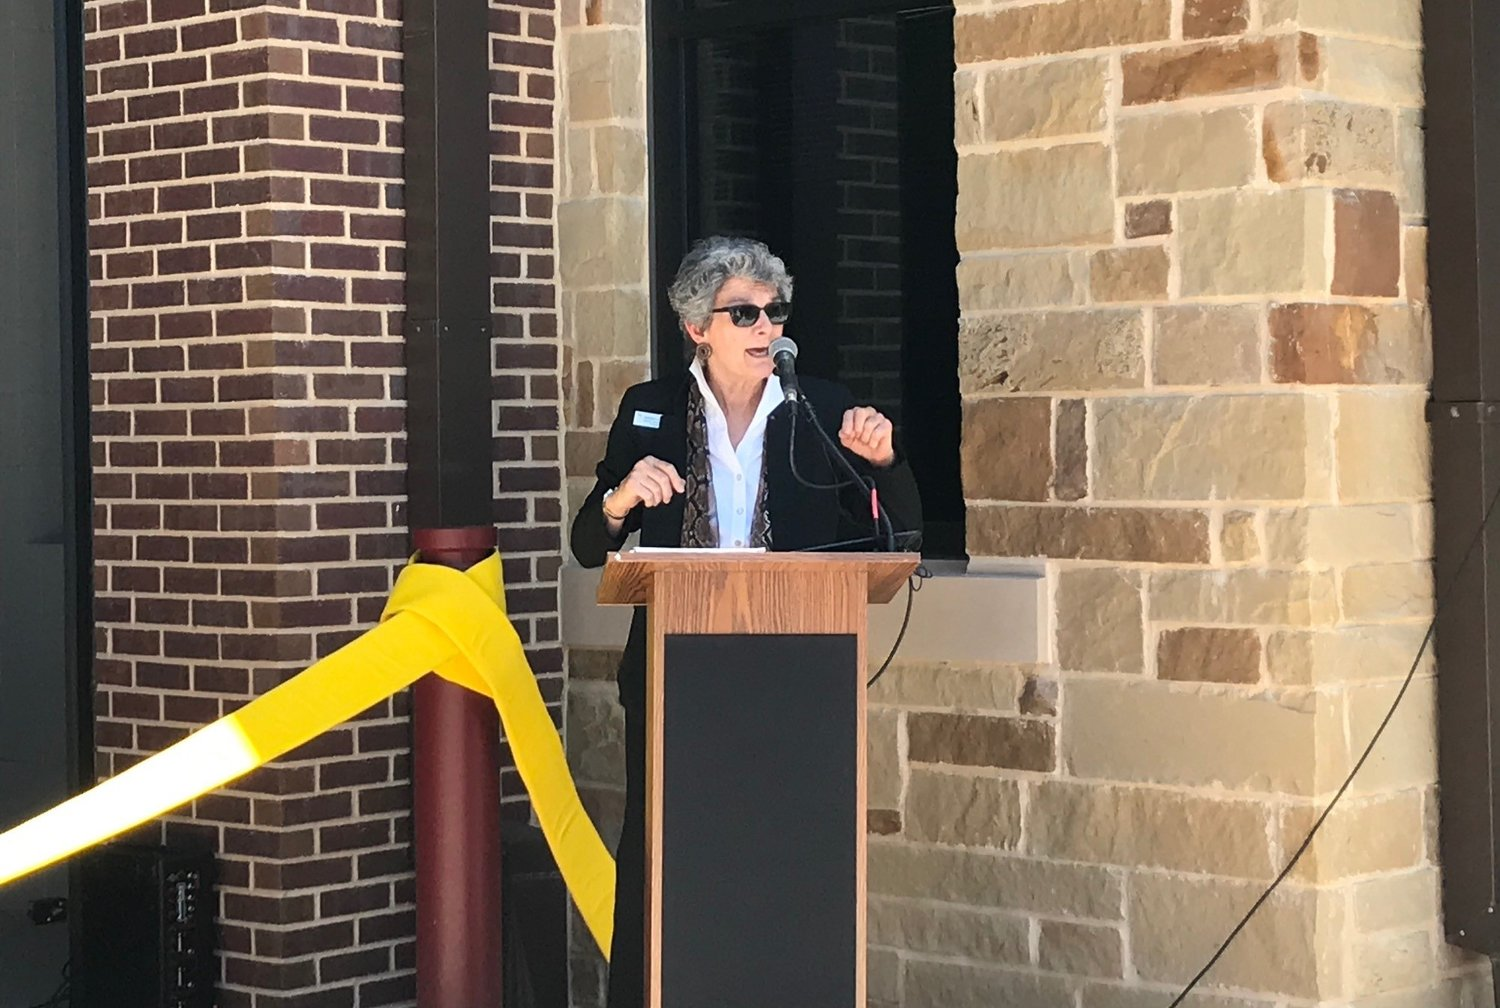 Commissioner Terry Cook speaks during the grand opening of the Sam Bass Fire Station 3 in Round Rock during a grand opening ceremony on May 16, 2019.